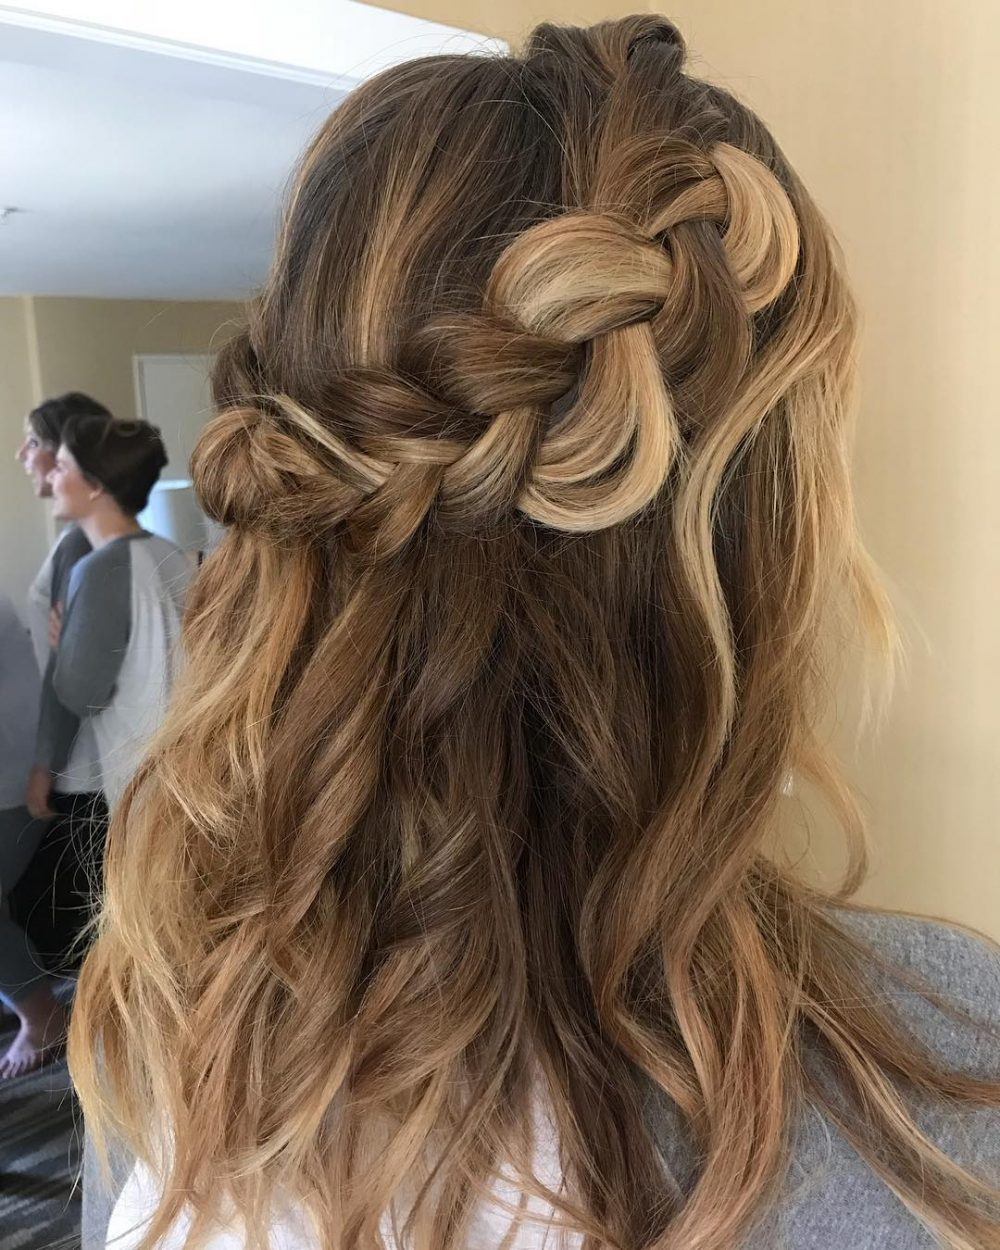 Festival Vibe hairstyle